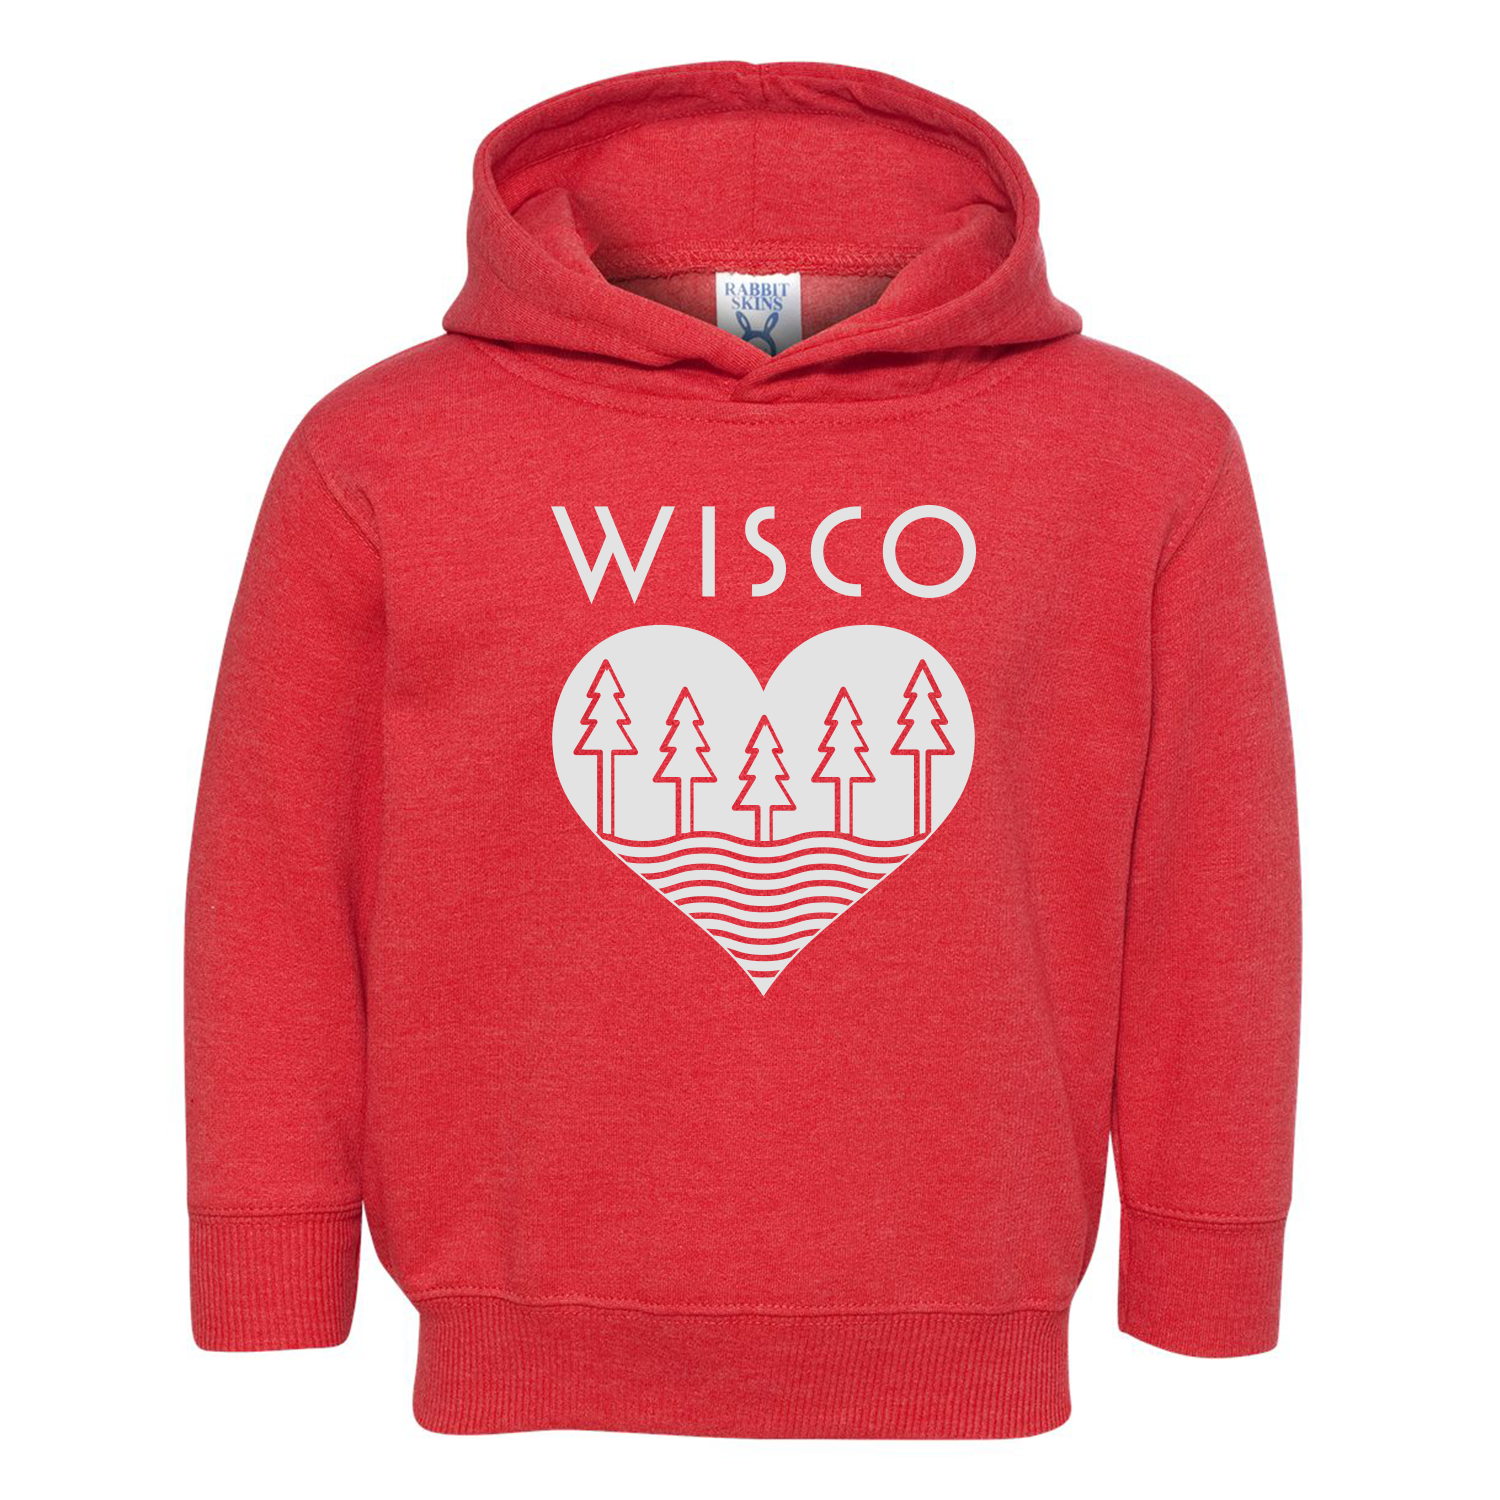 The Wisco Roots Red Toddler Hoodie